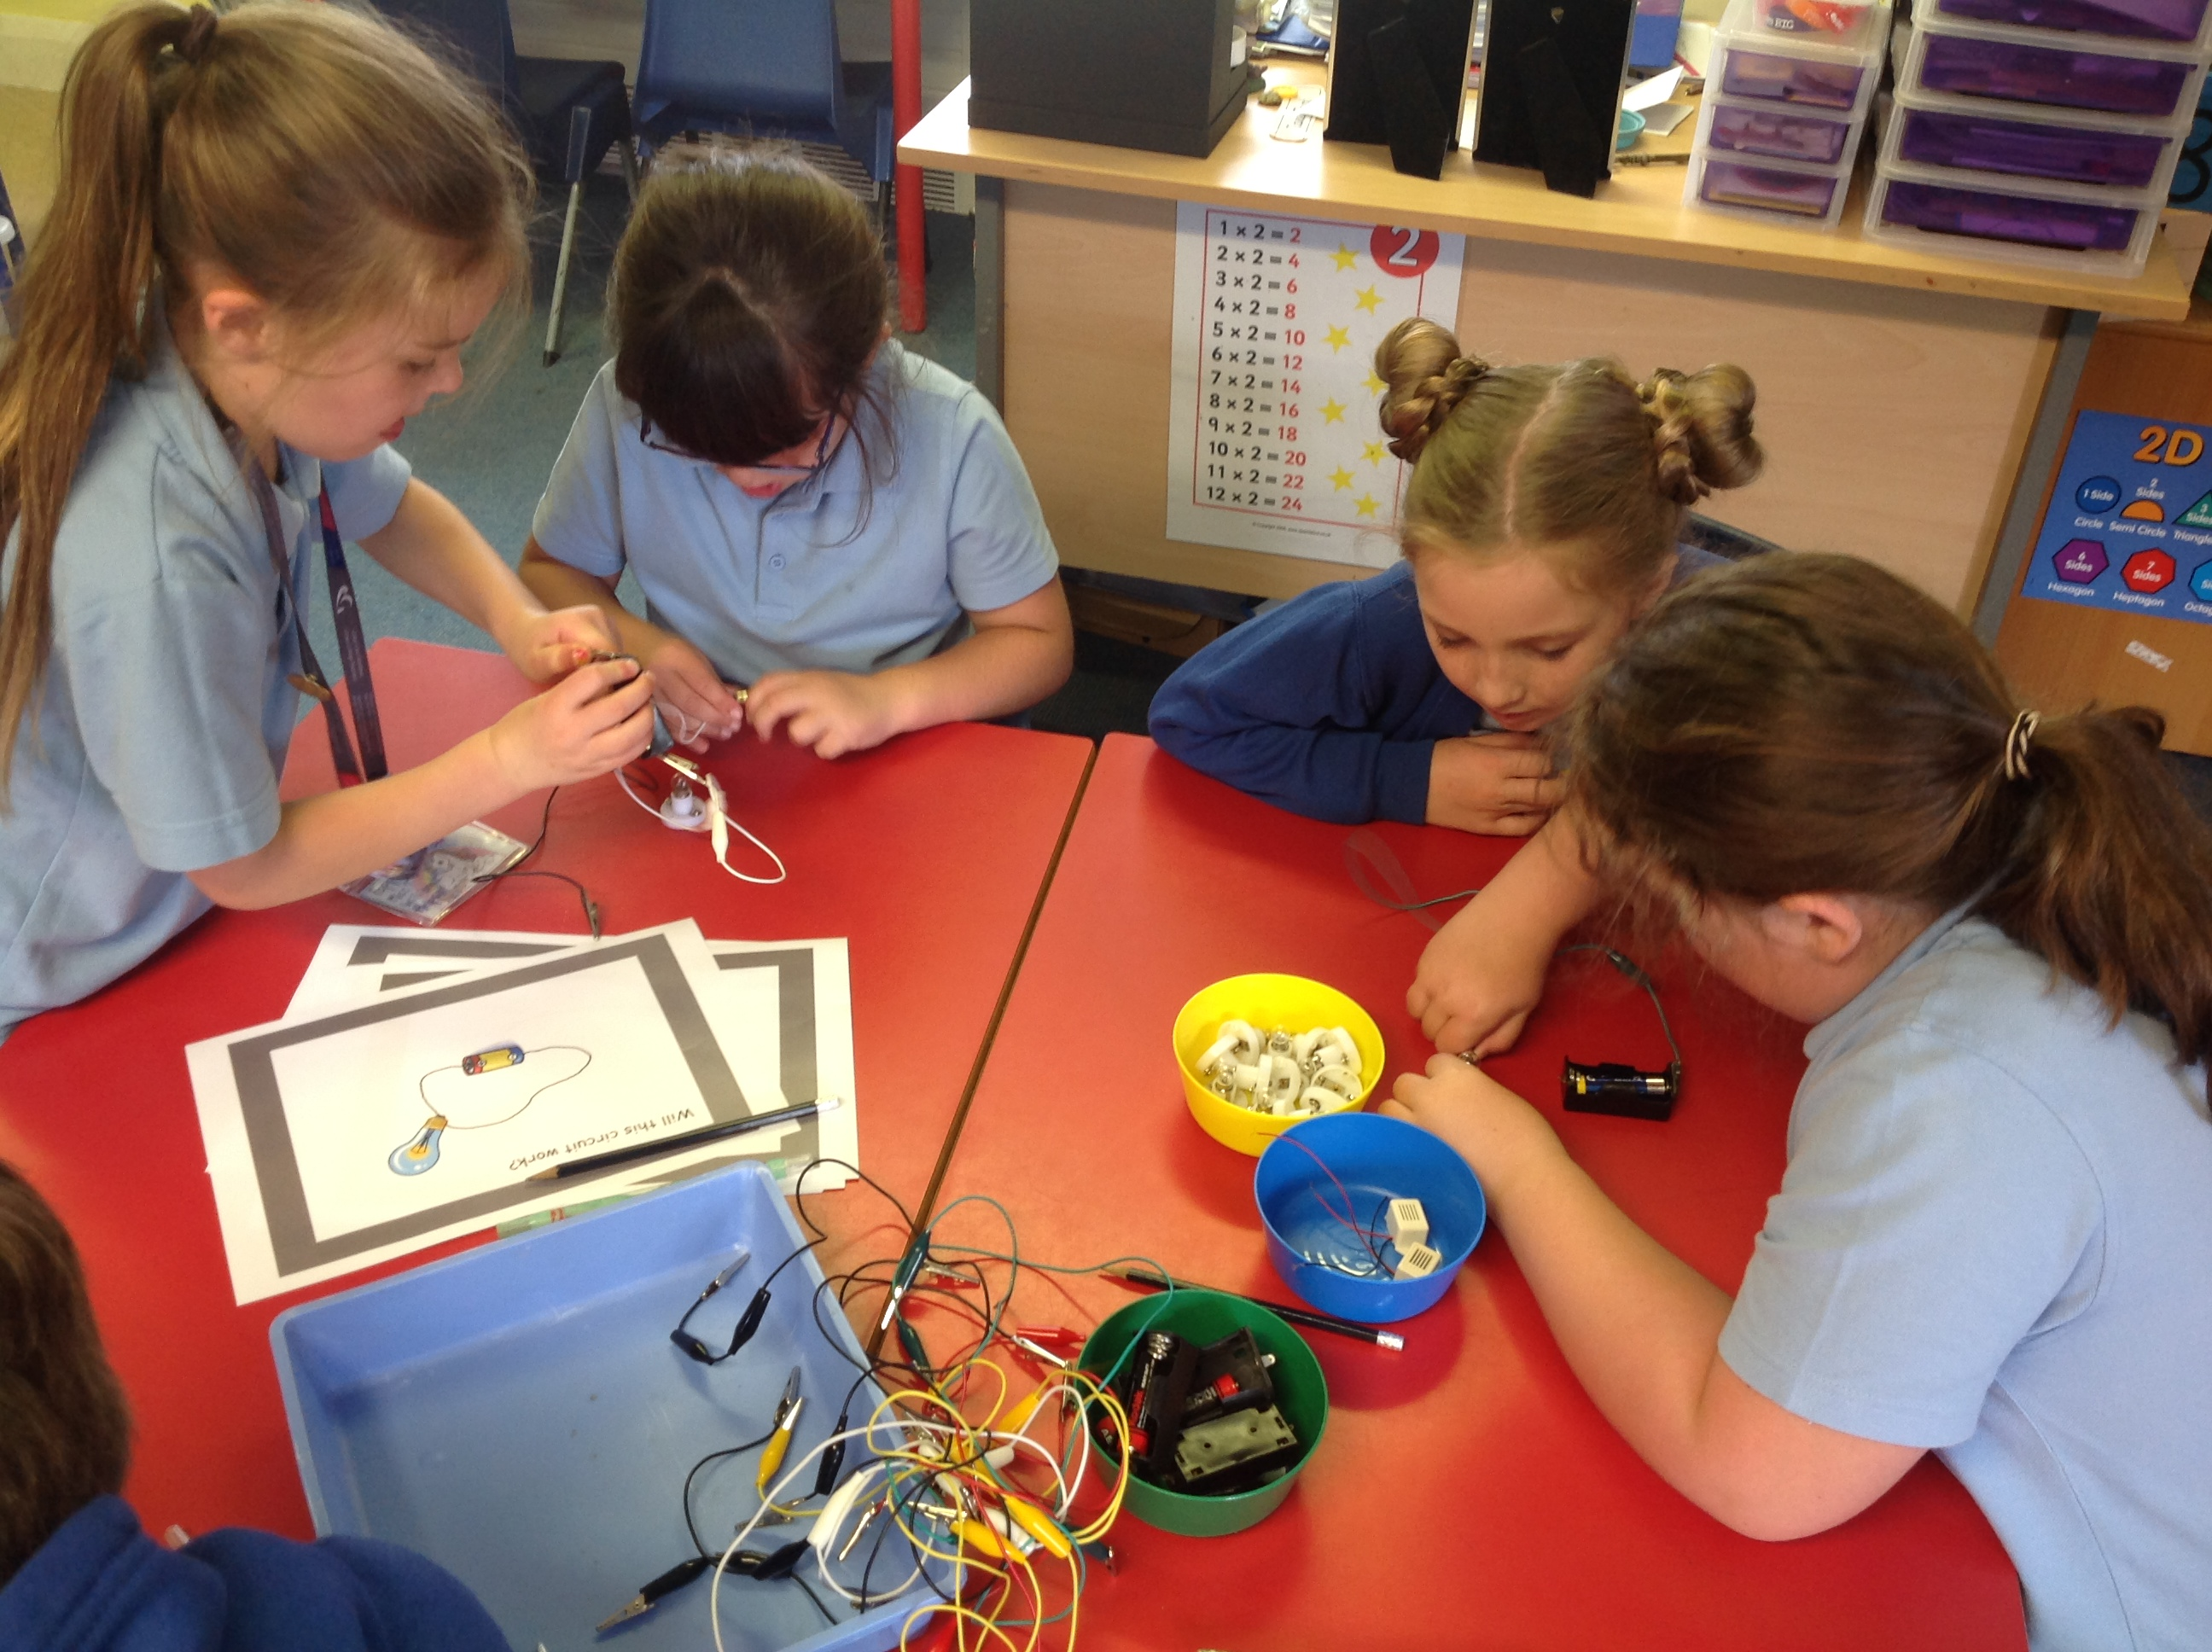 Experimenting With Circuits